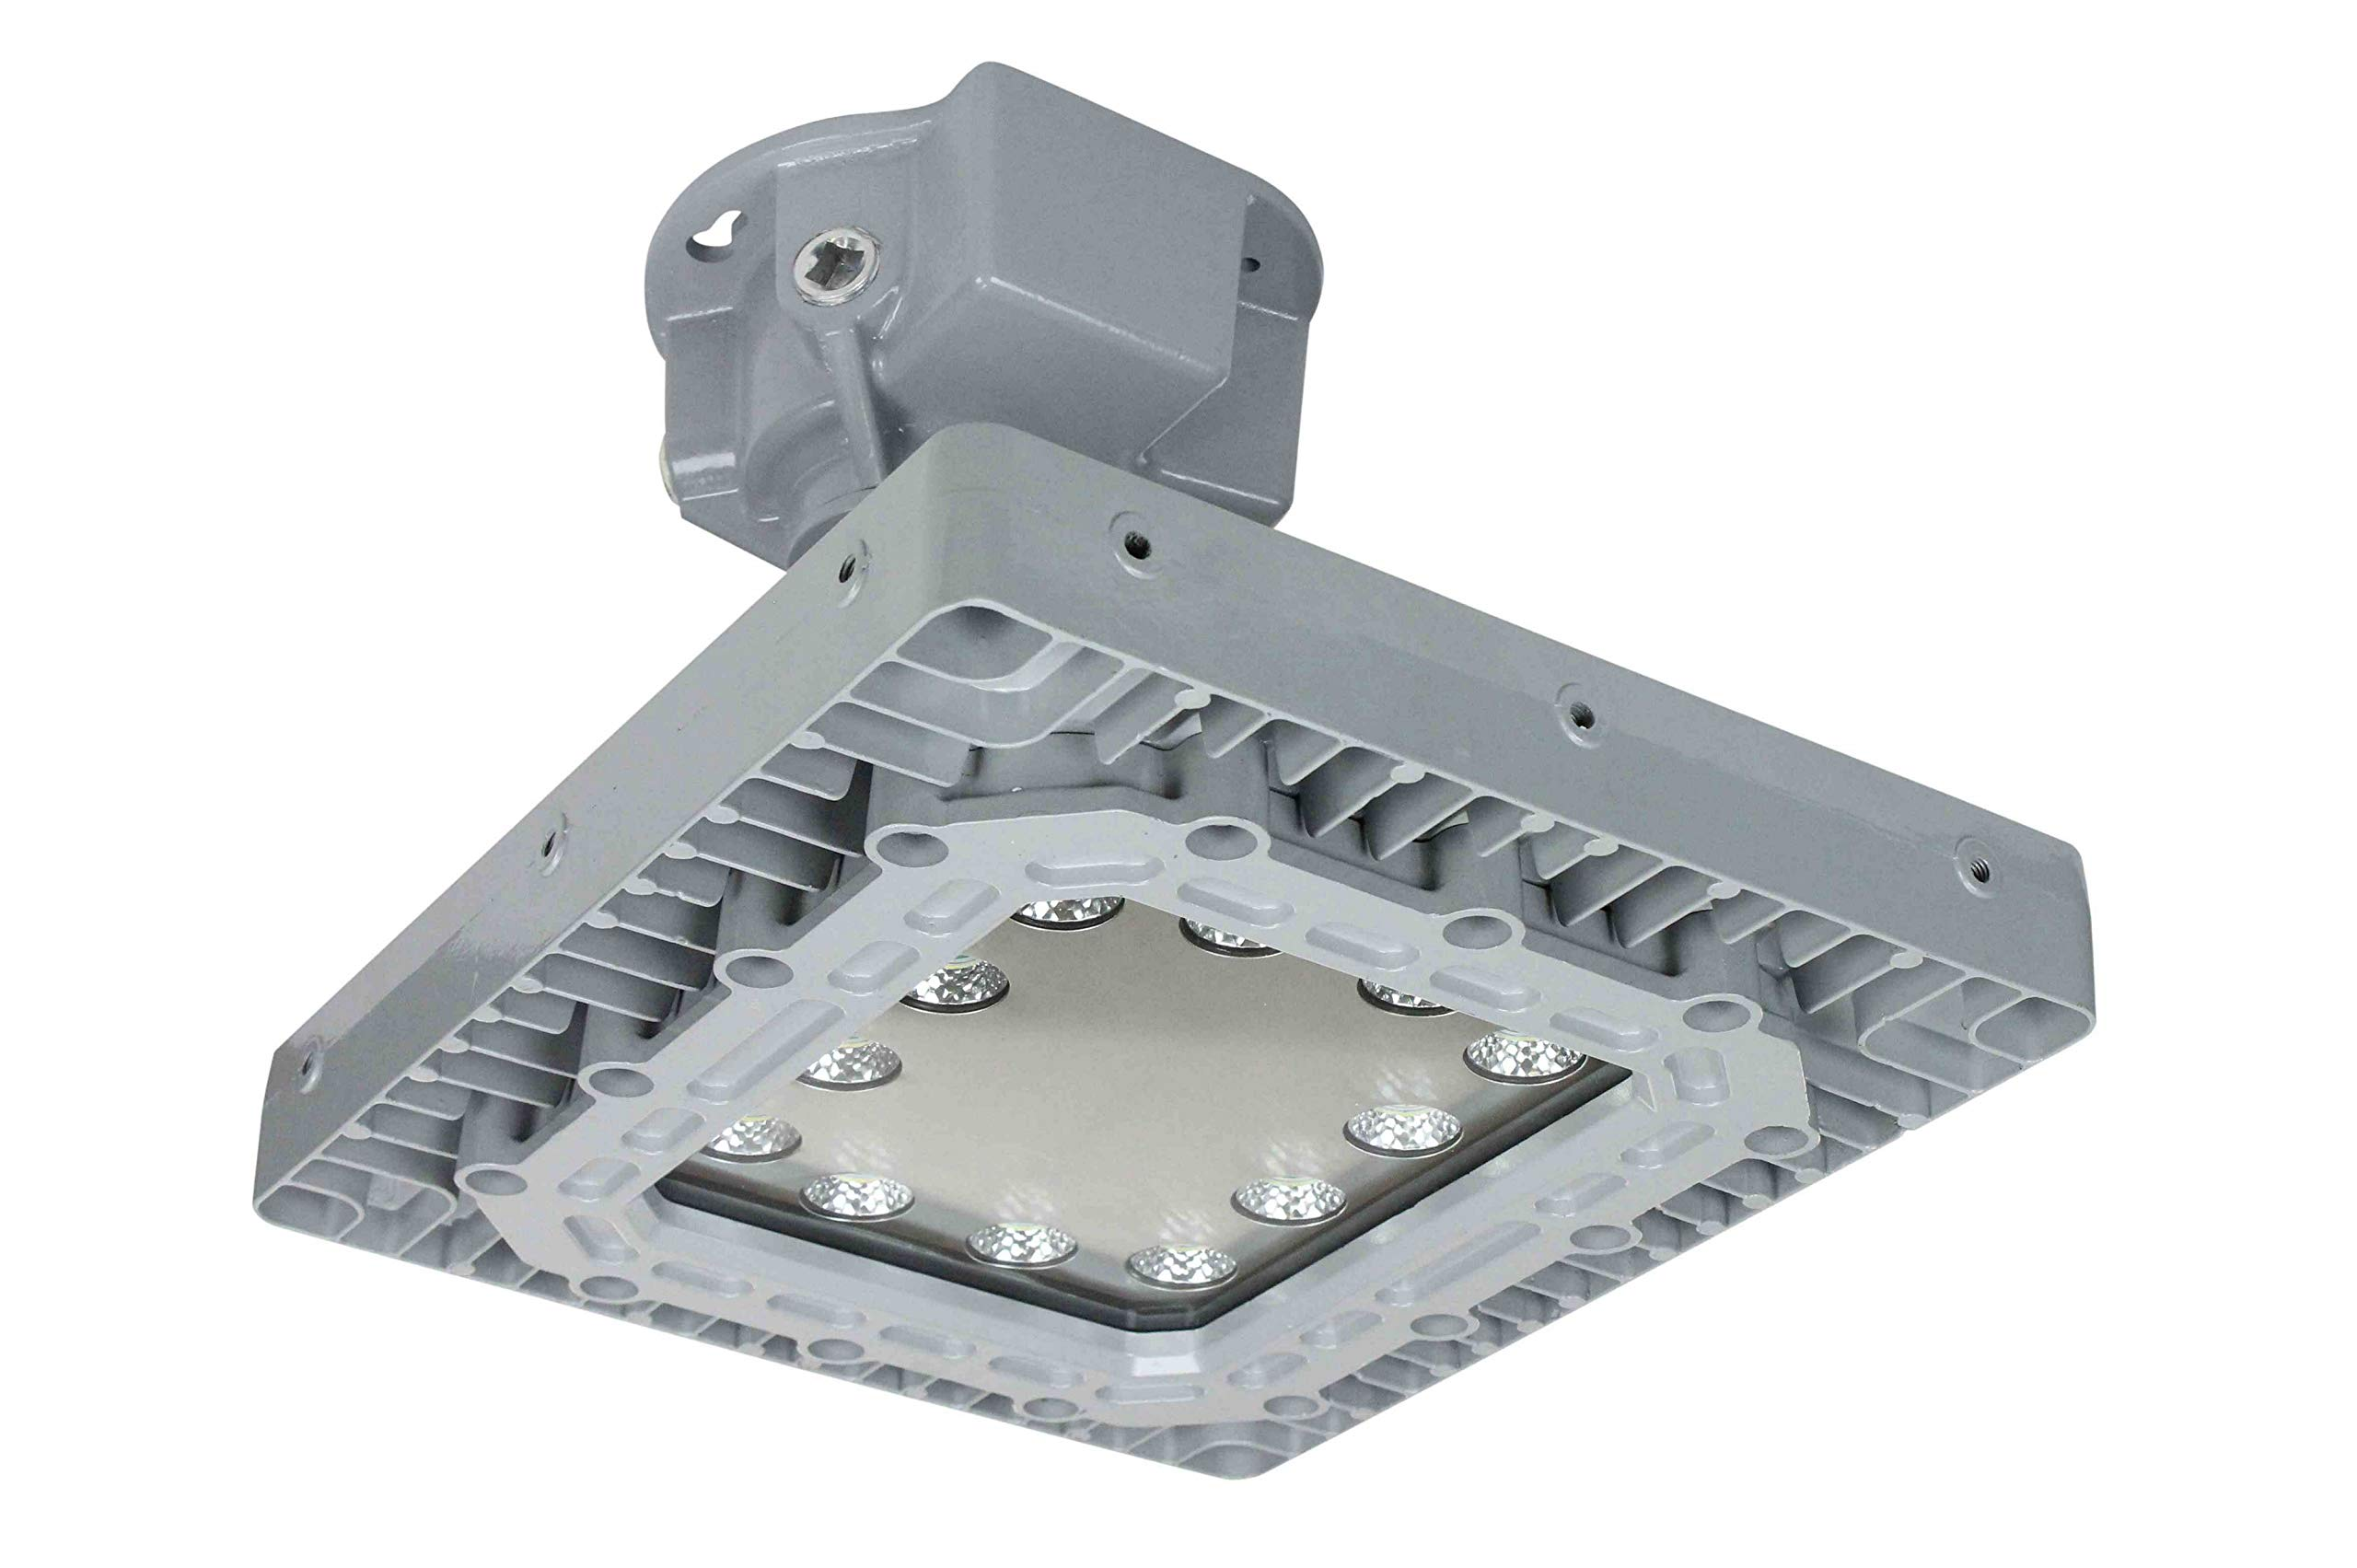 150W Ceiling Mount Explosion Proof High Bay LED Light - Paint Booth Approved - 13 000 Lumens by Larson Electronics